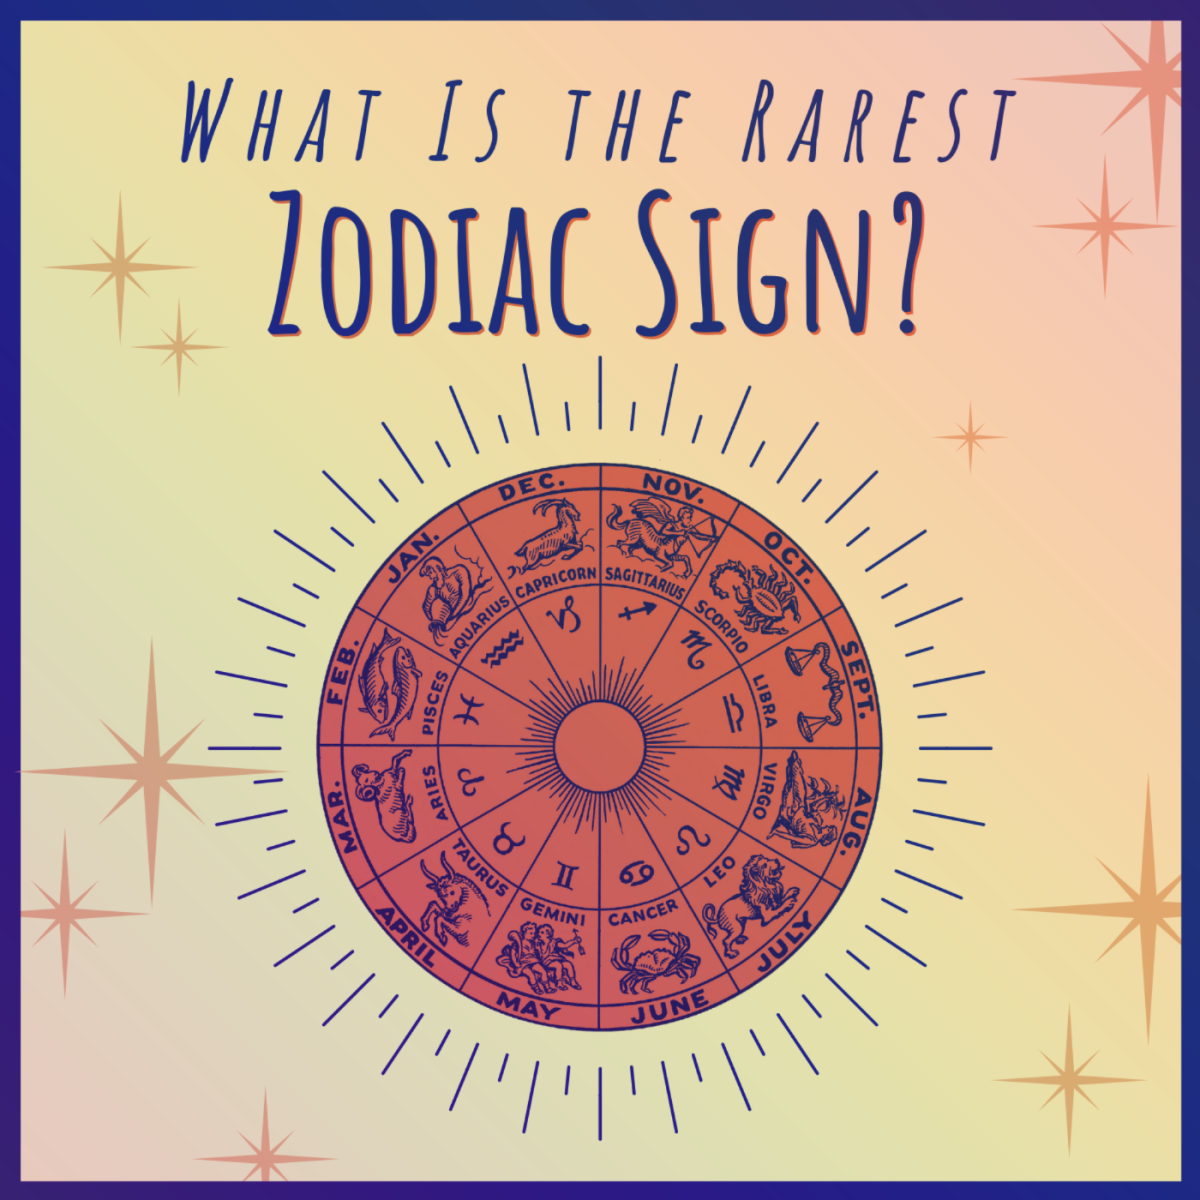 Wondering which birthdays and star signs are the rarest and which are the most common?